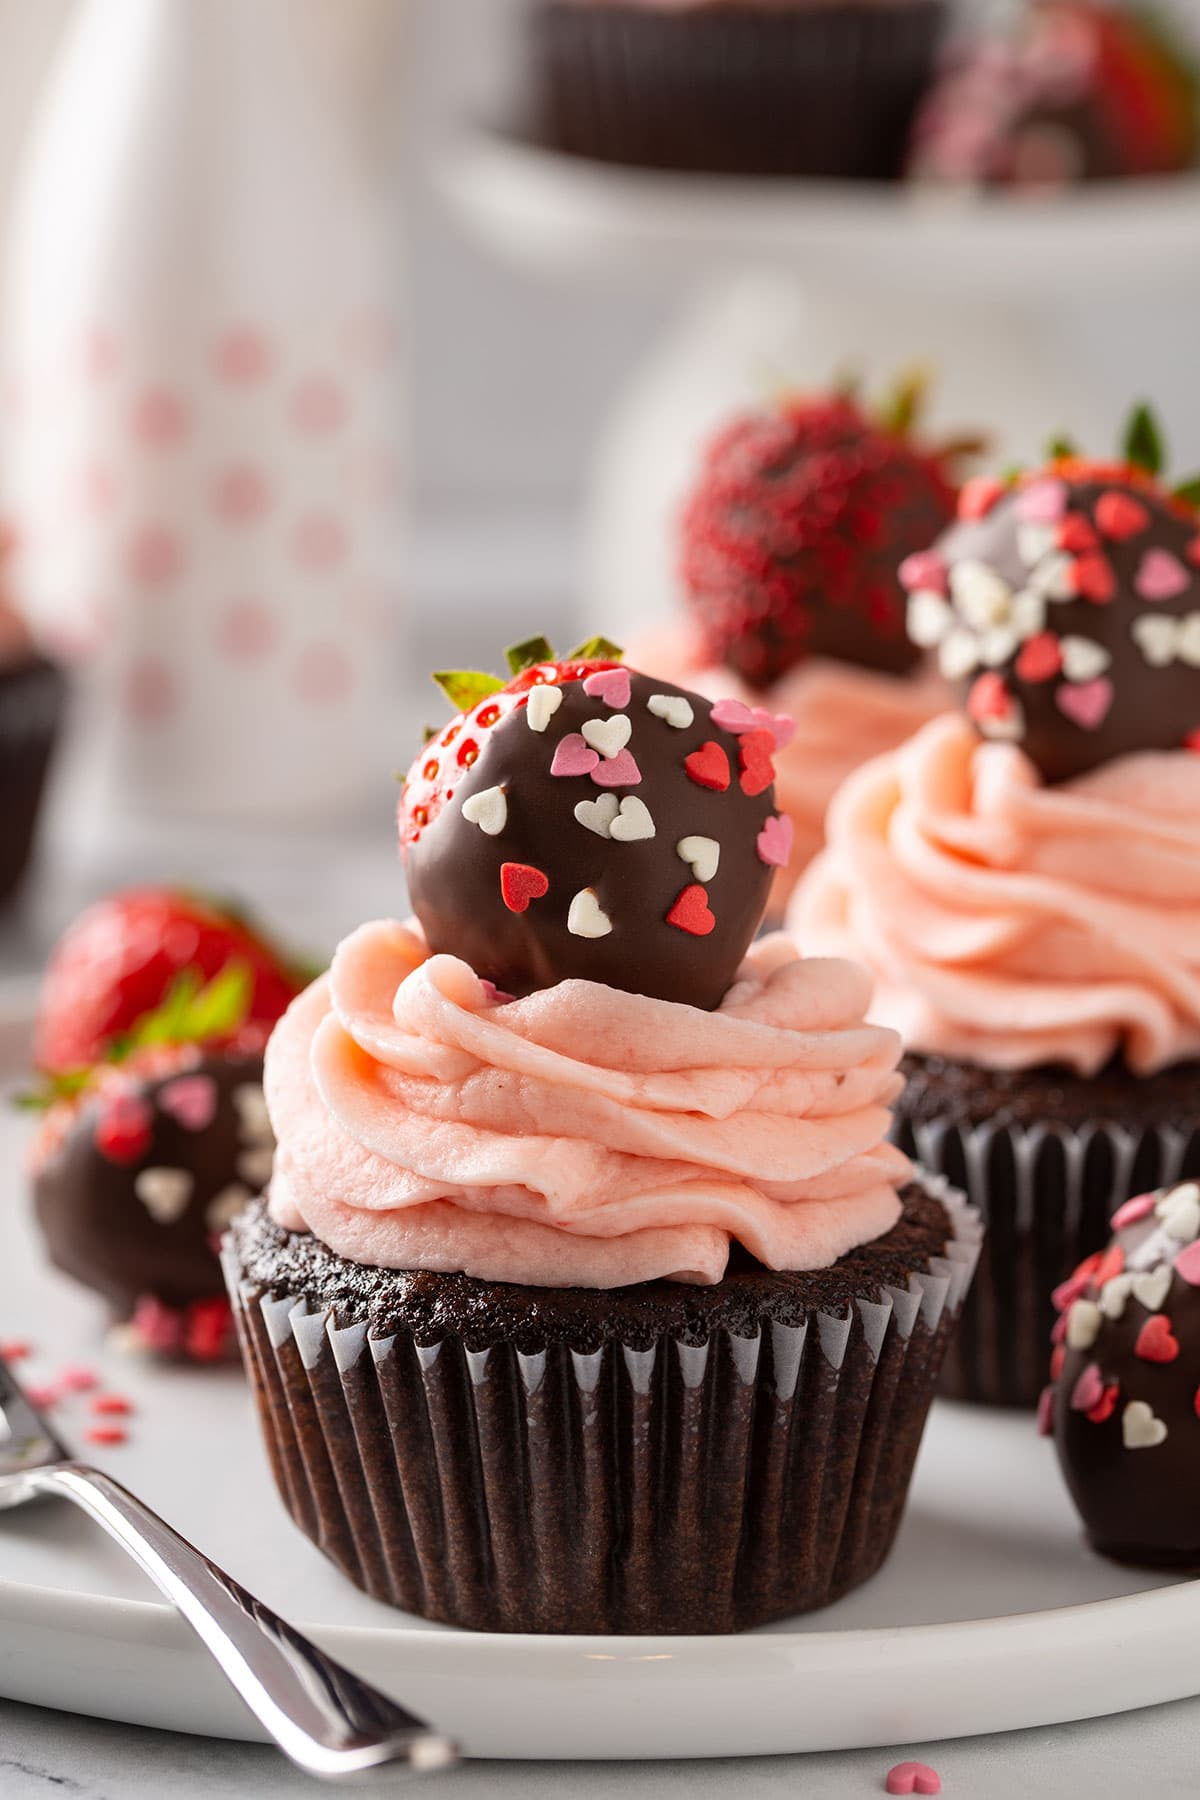 Close up to a cupcake topped with a chocolate covered strawberry